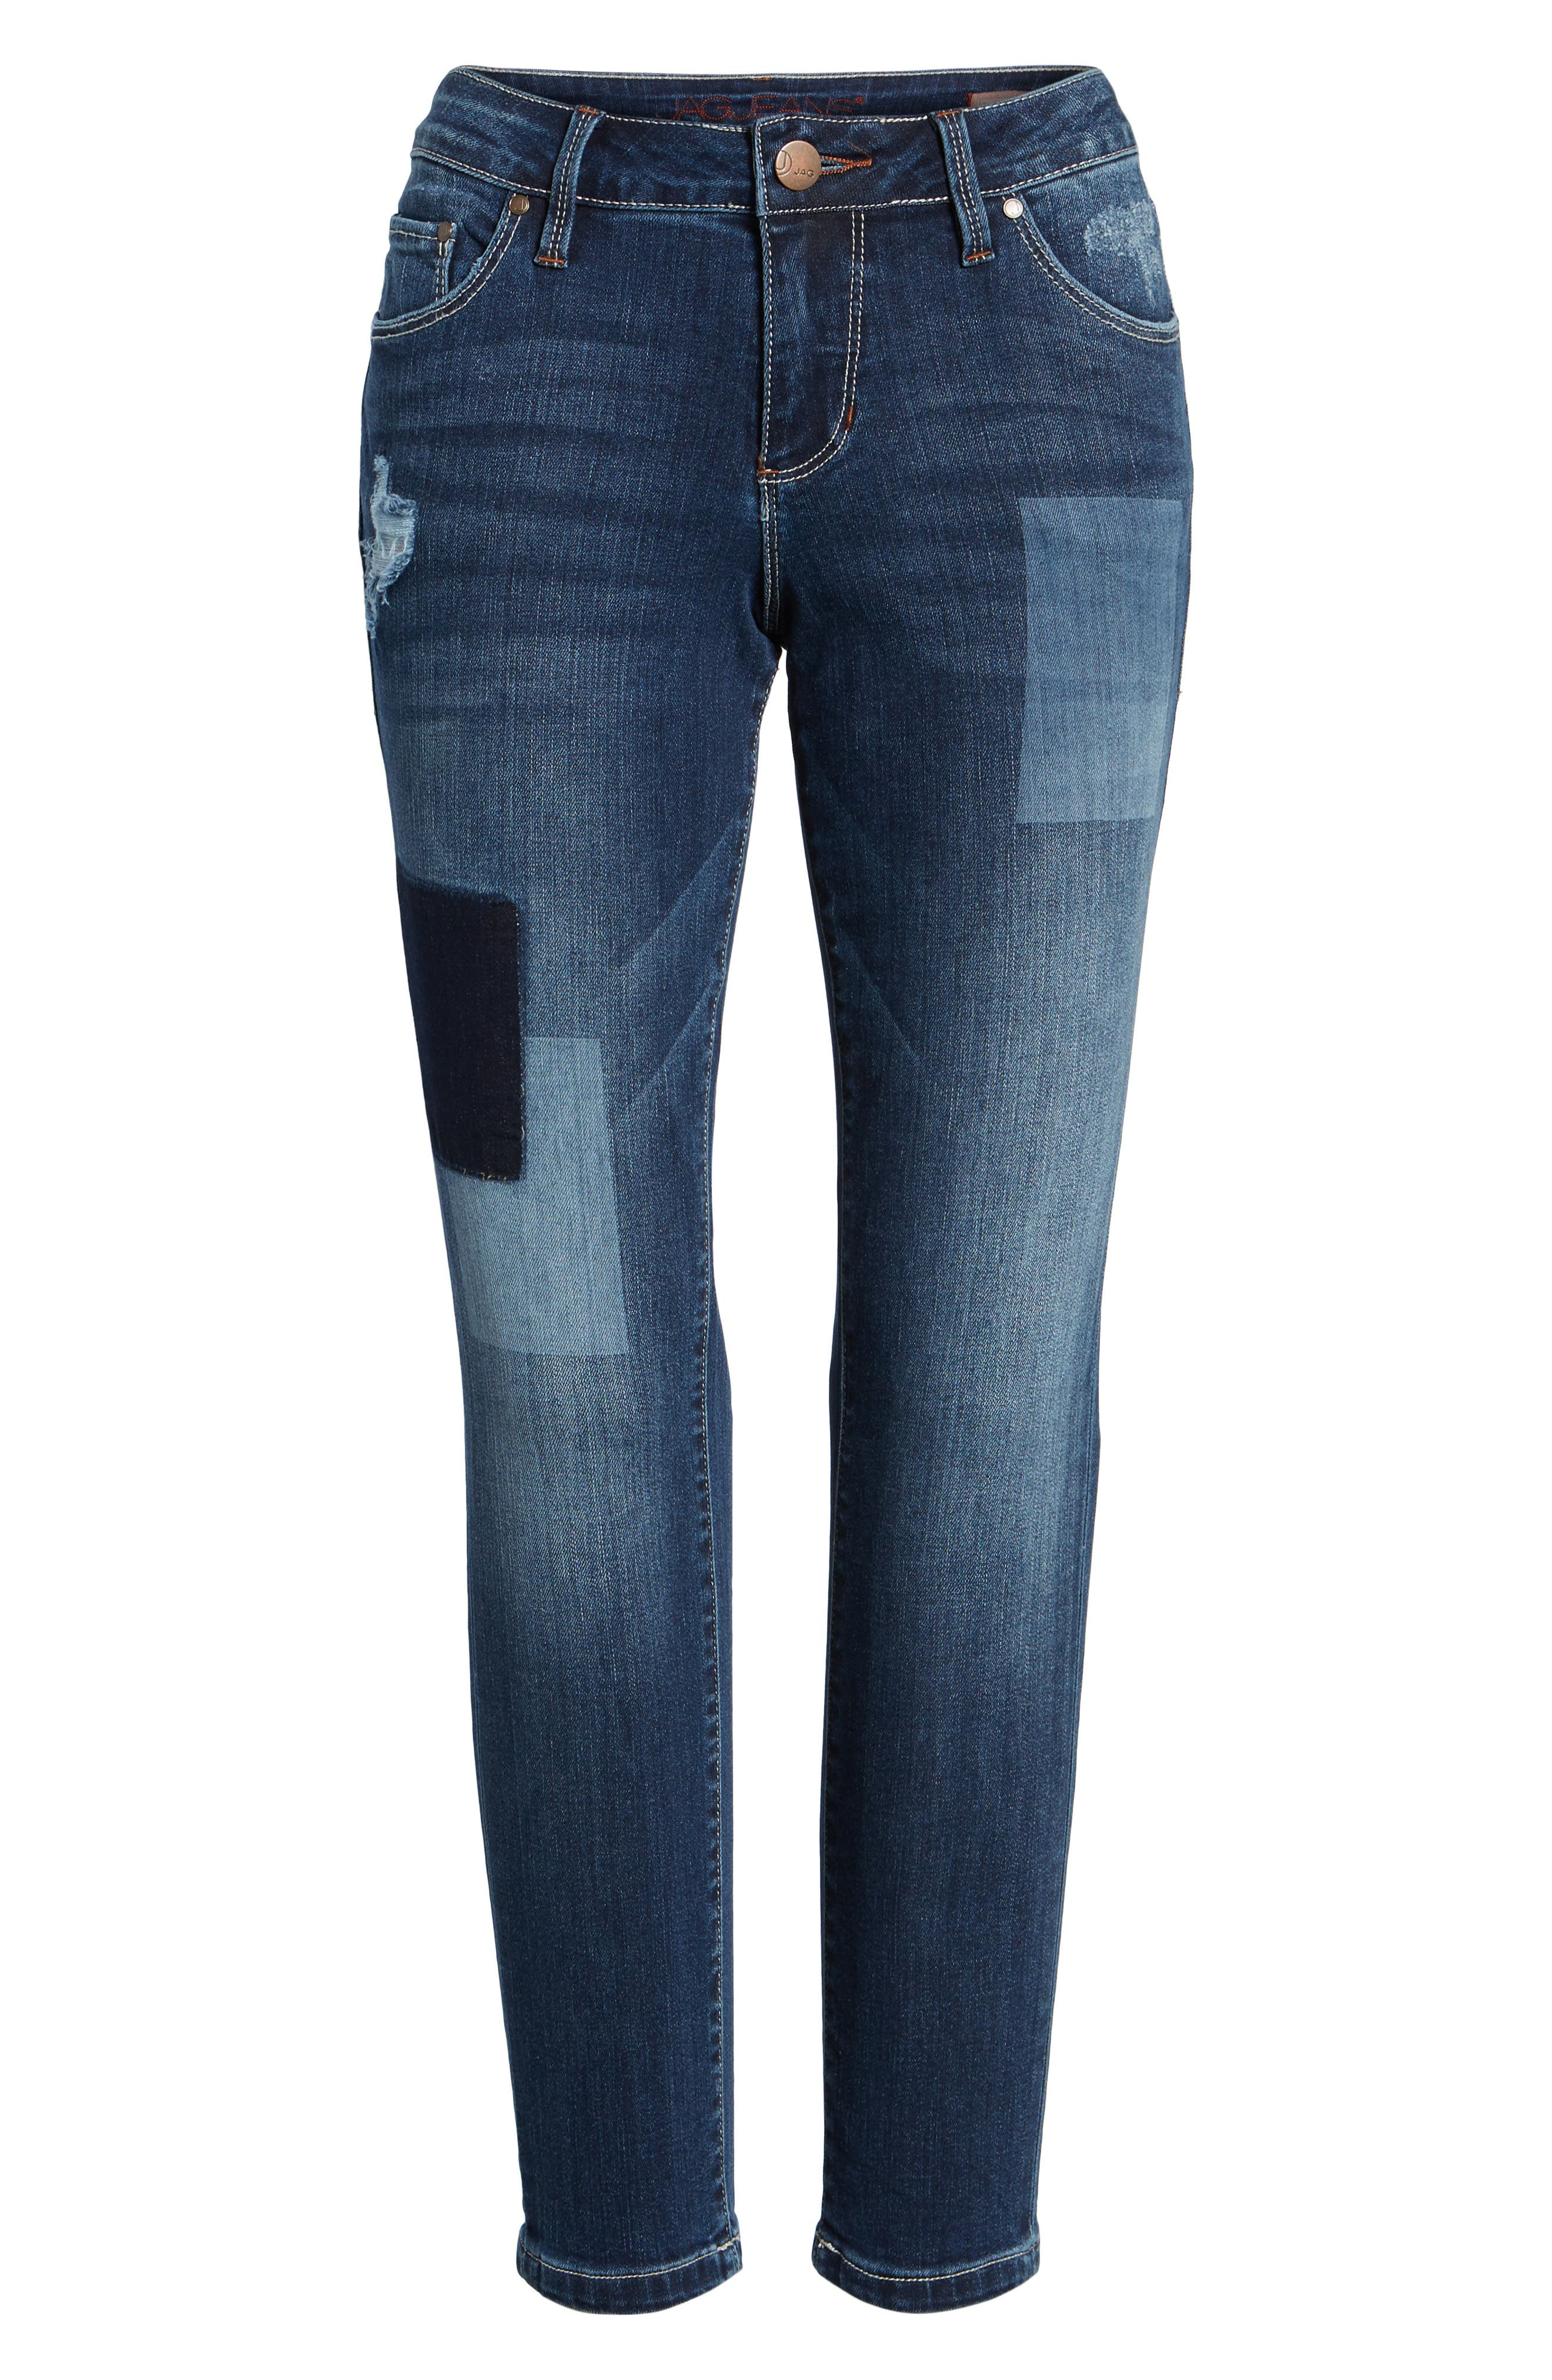 Mera Skinny Ankle Jeans,                             Main thumbnail 1, color,                             Bucket Blue